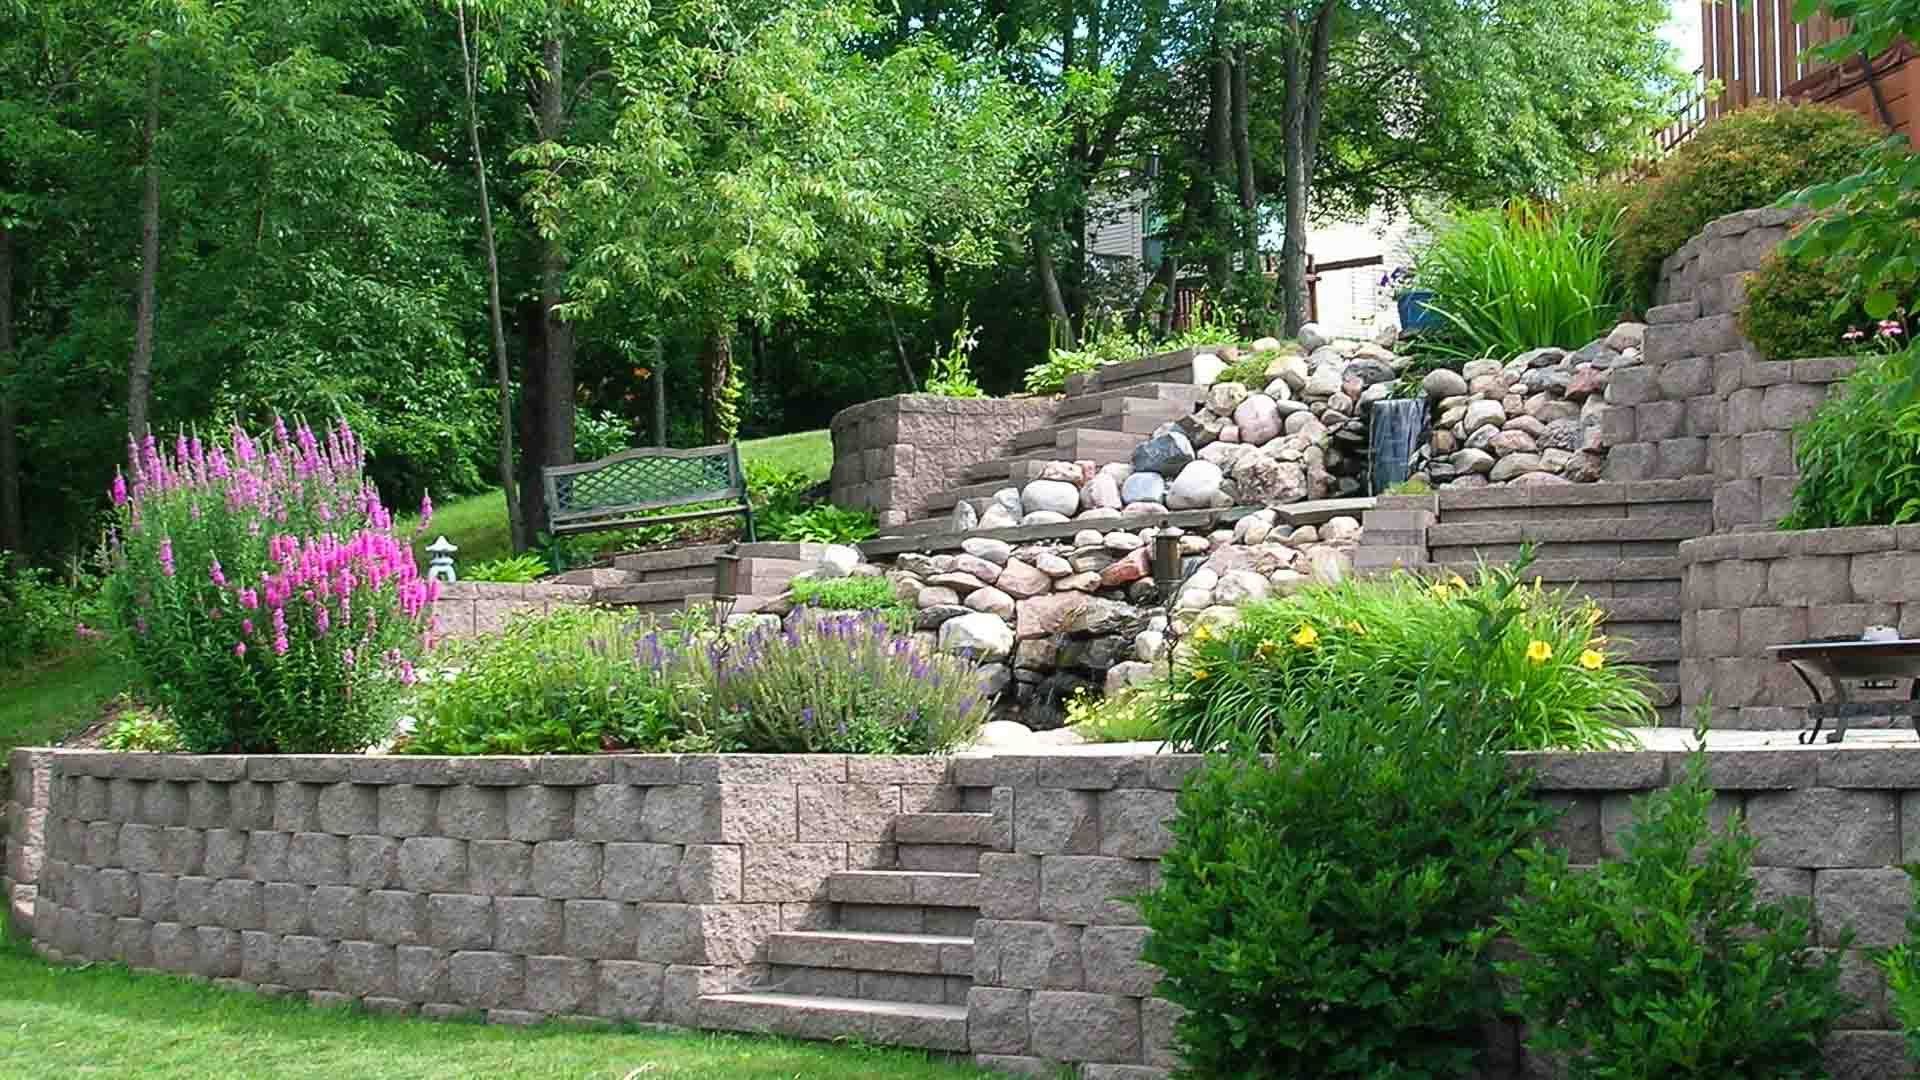 Forever Green Coralville Iowa retaining walls patio landscaping iowa city